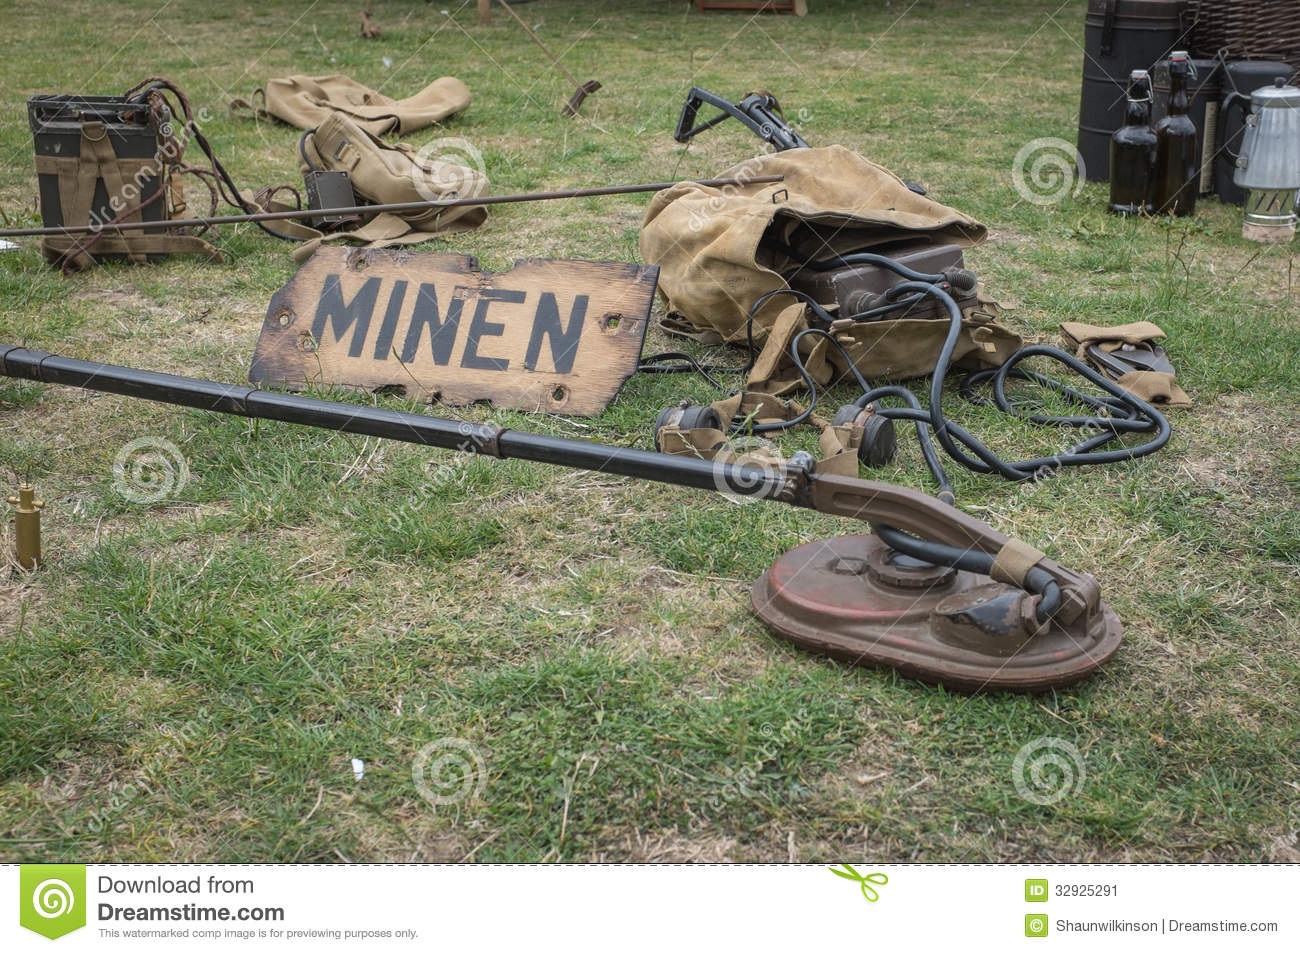 Vintage mine sweeper stock image  Image of weapon, military